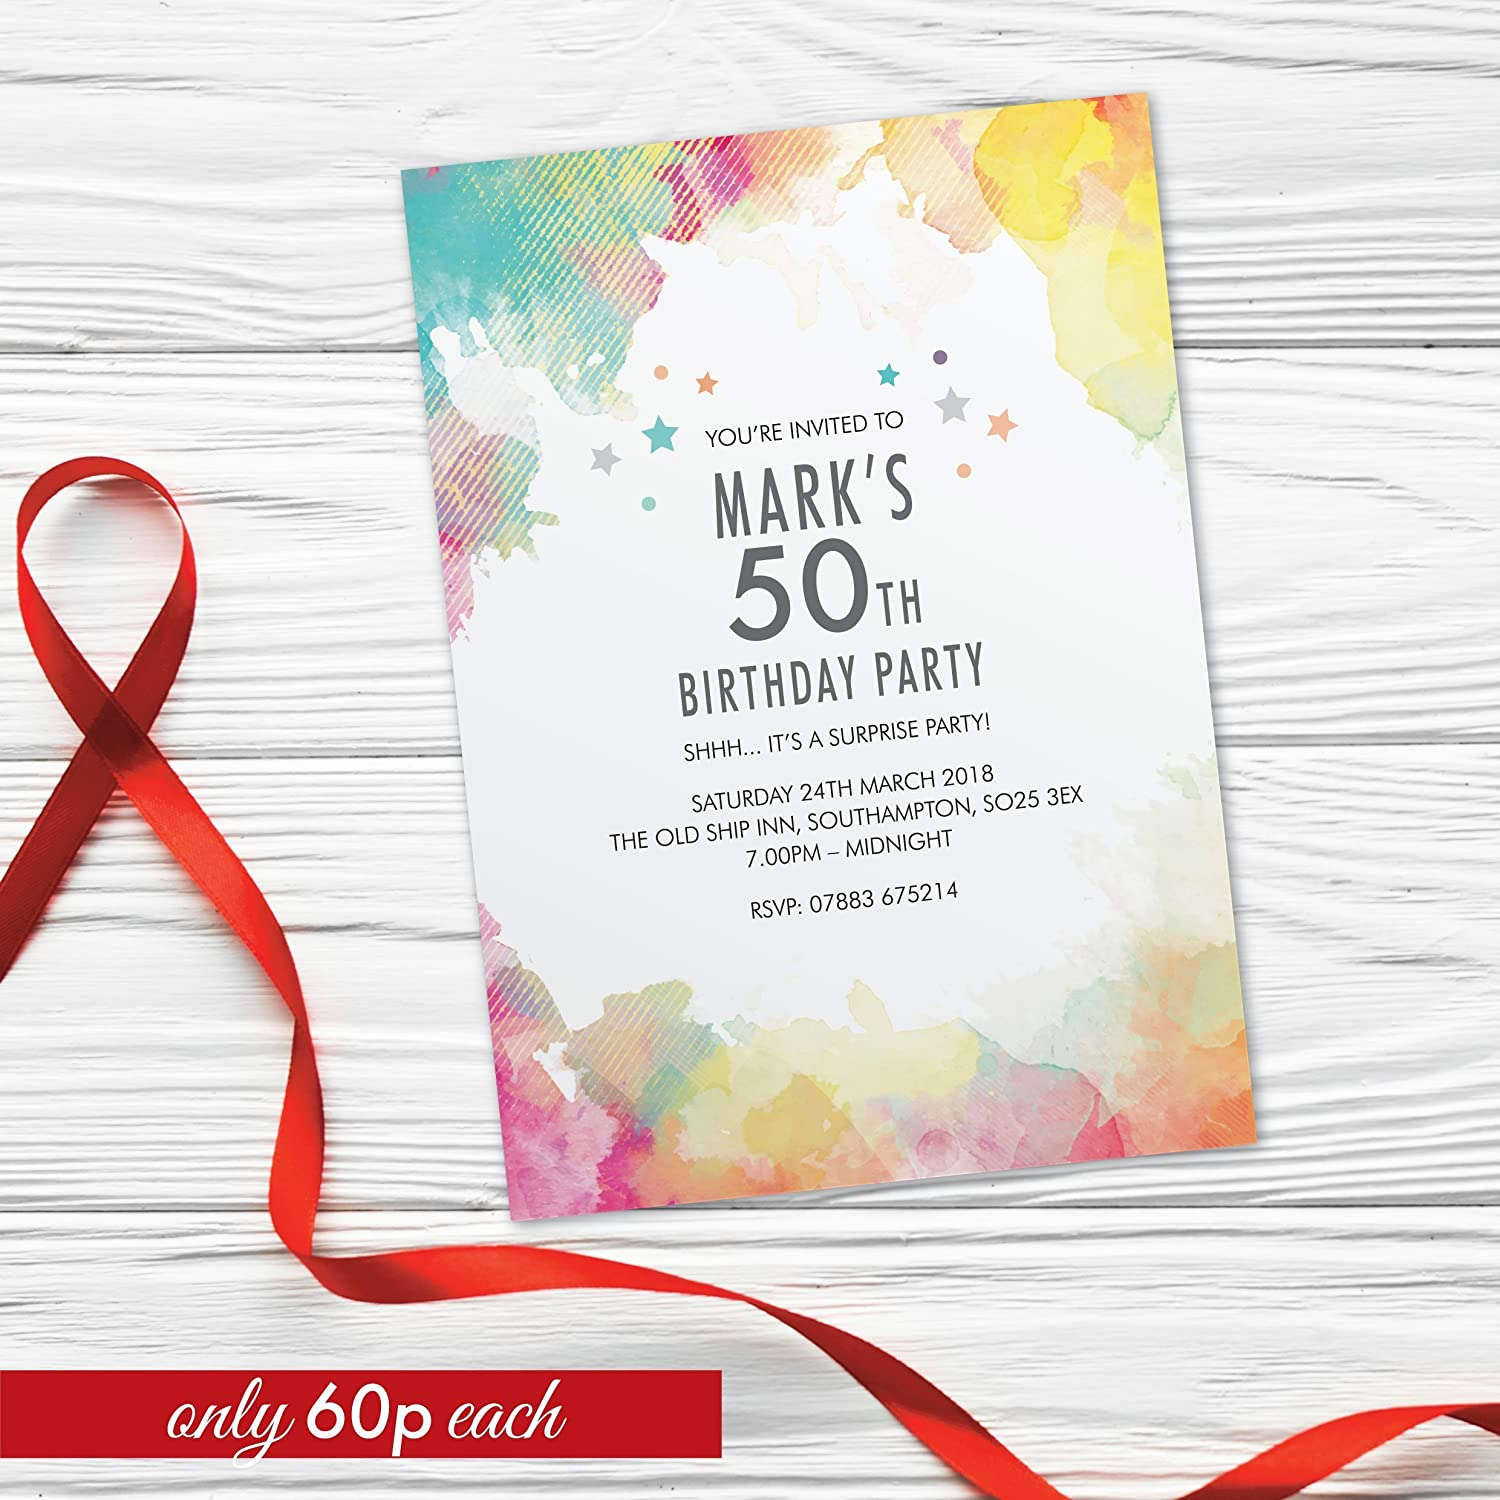 Personalised Surprise 50th birthday party invitations for women for men cards invites 10 Pack